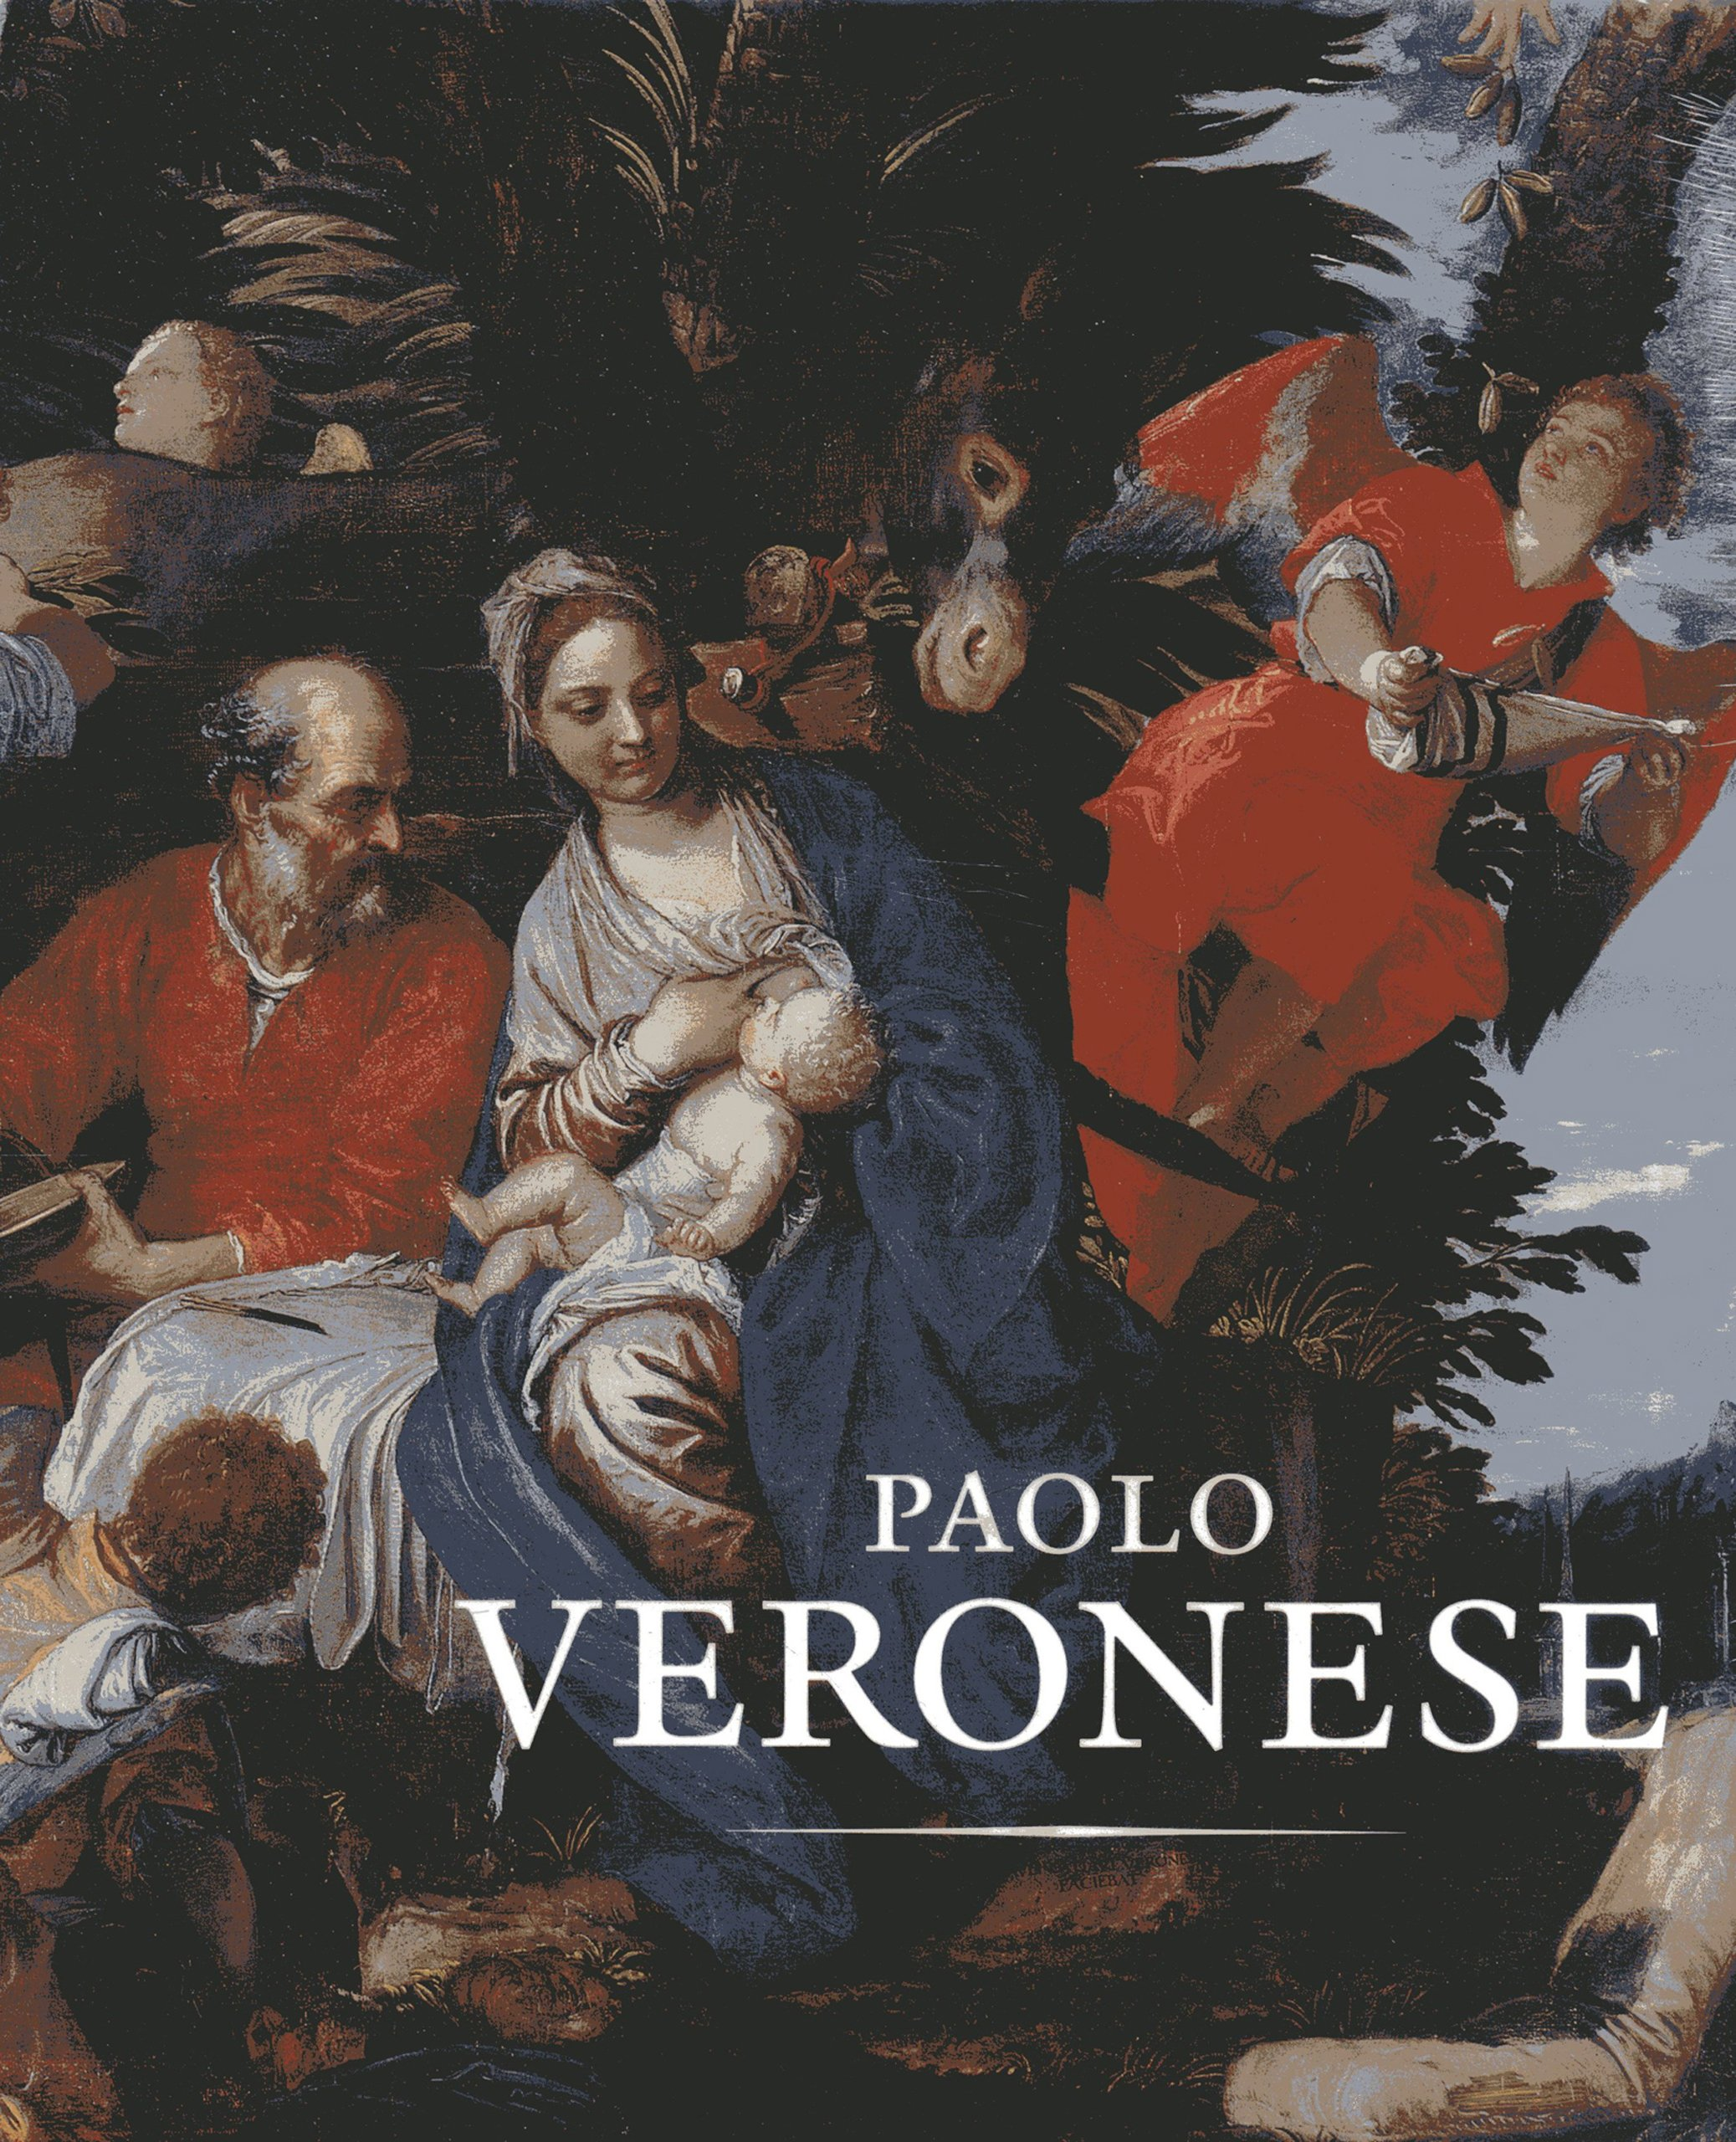 Paolo Veronese A Master and His Workshop in Renaissance Venice